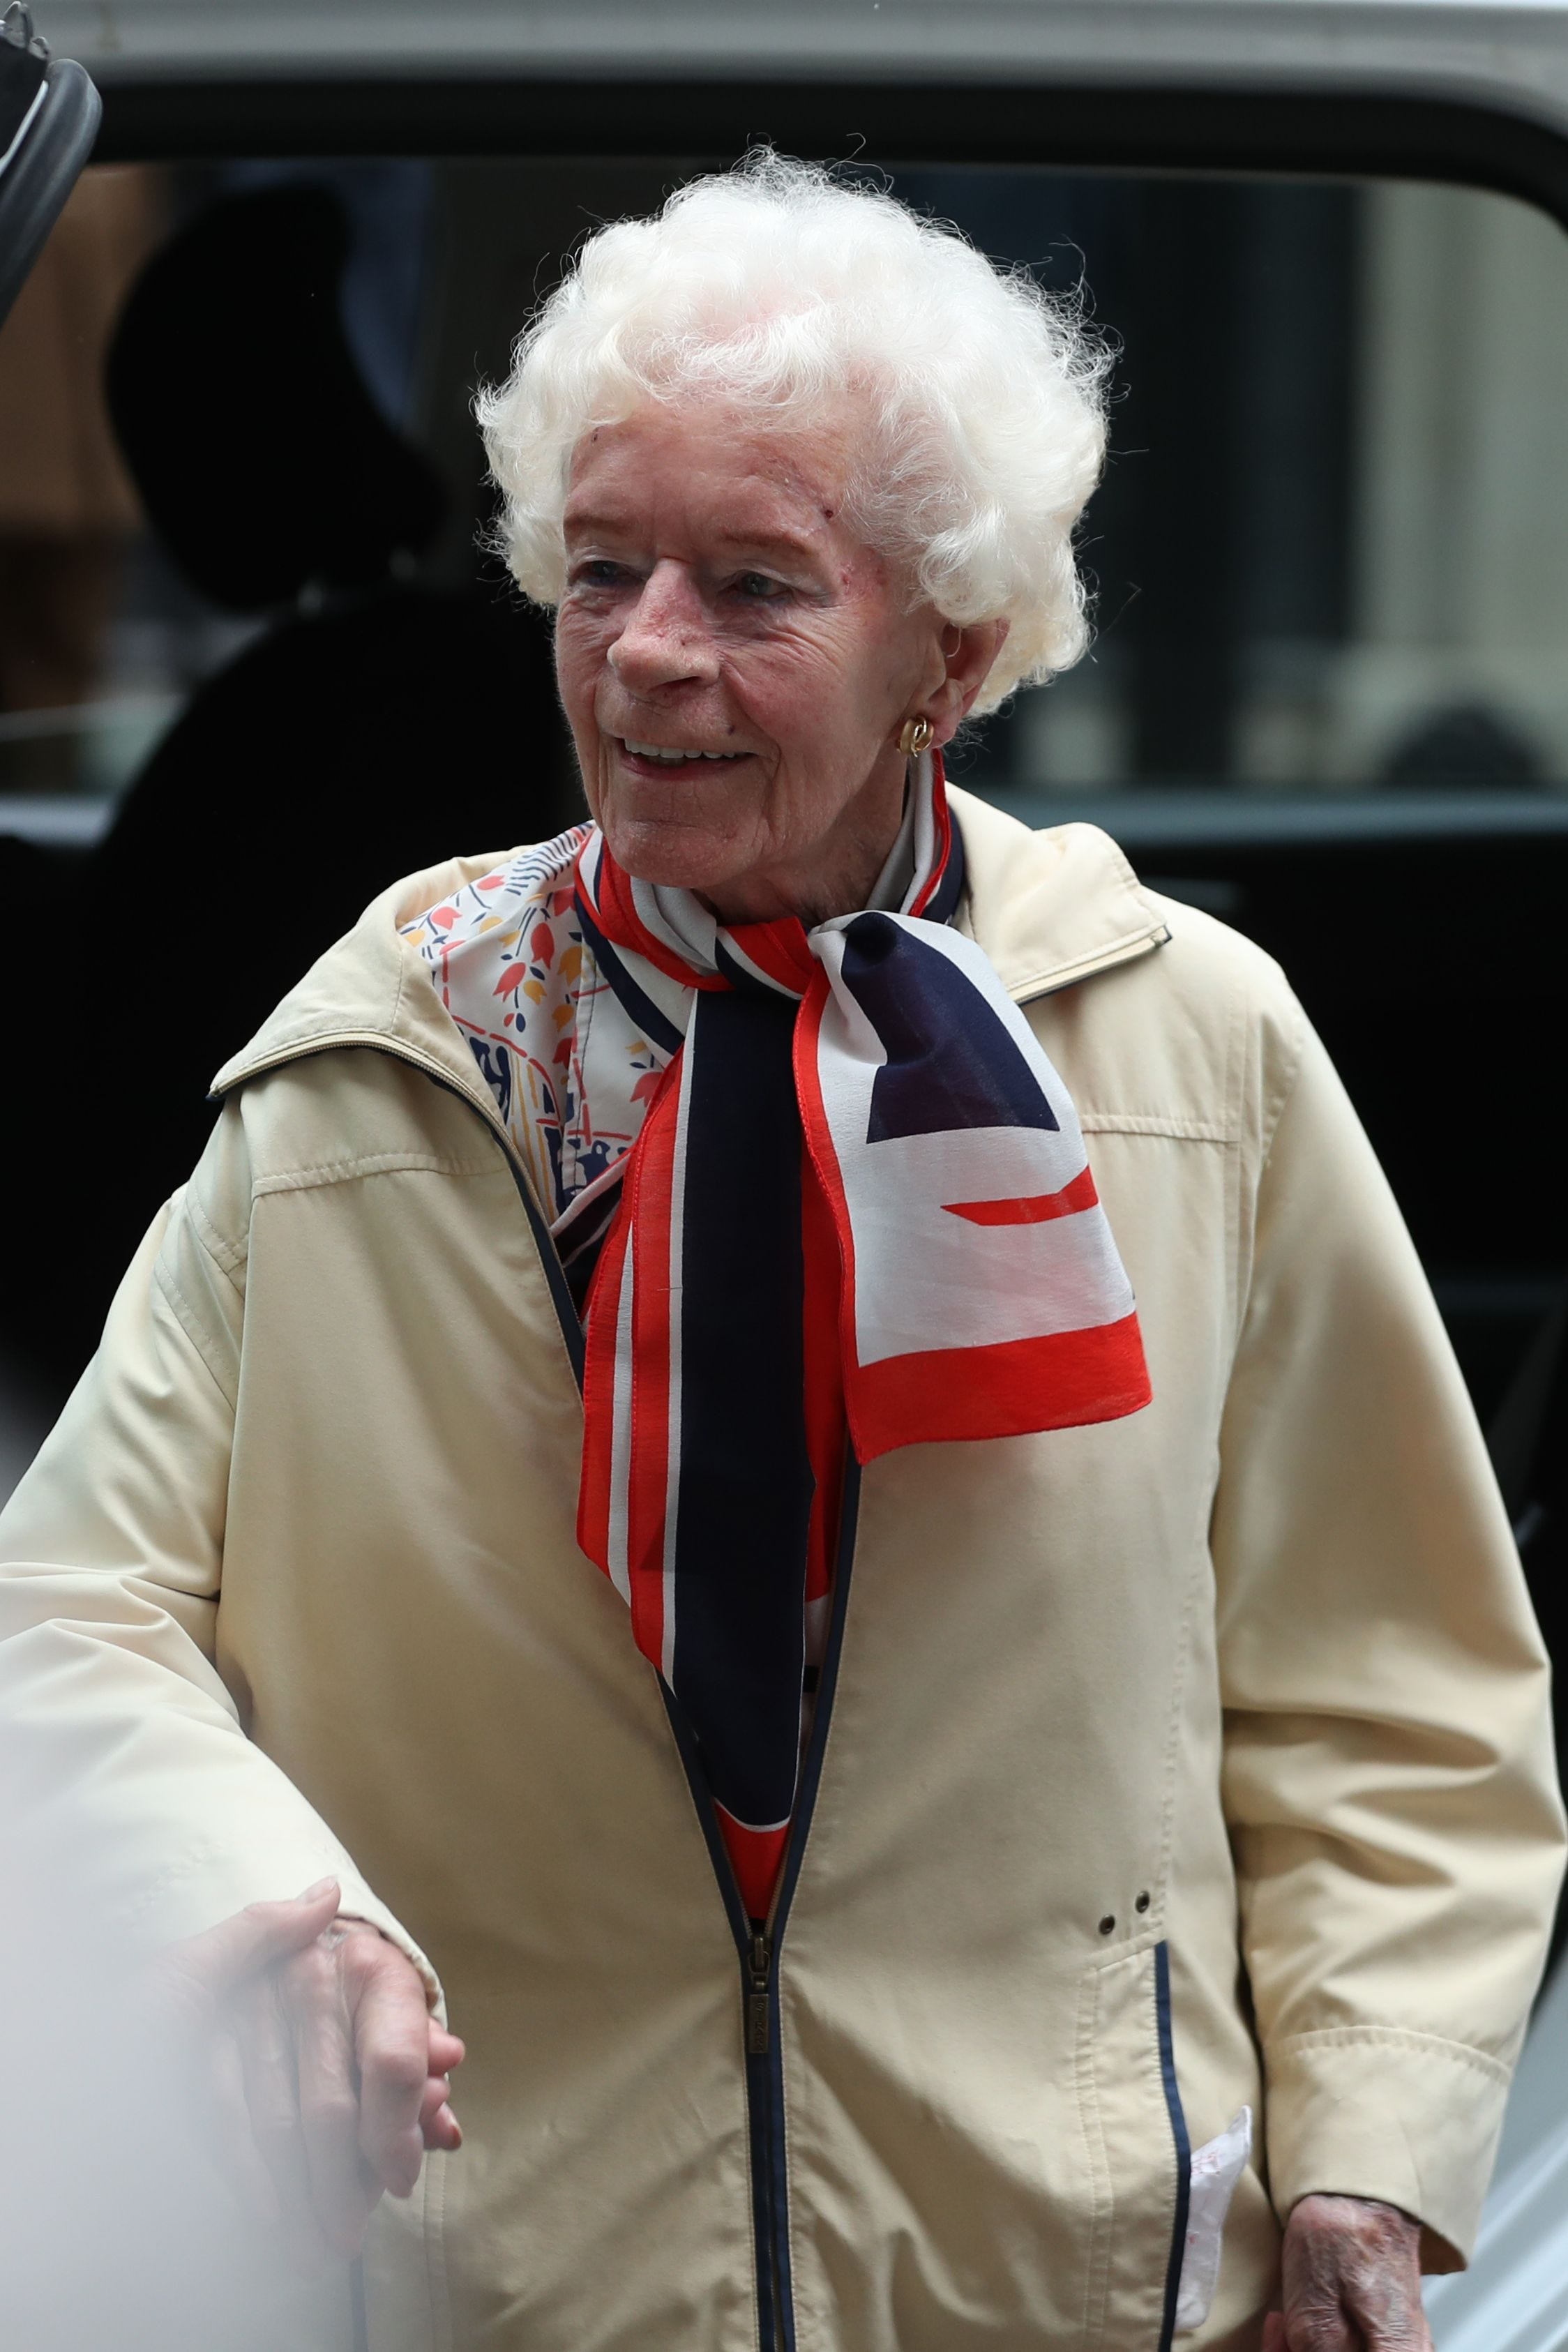 'A legend': Mary Ellis, one of the last women pilots from World War II, dies at 101